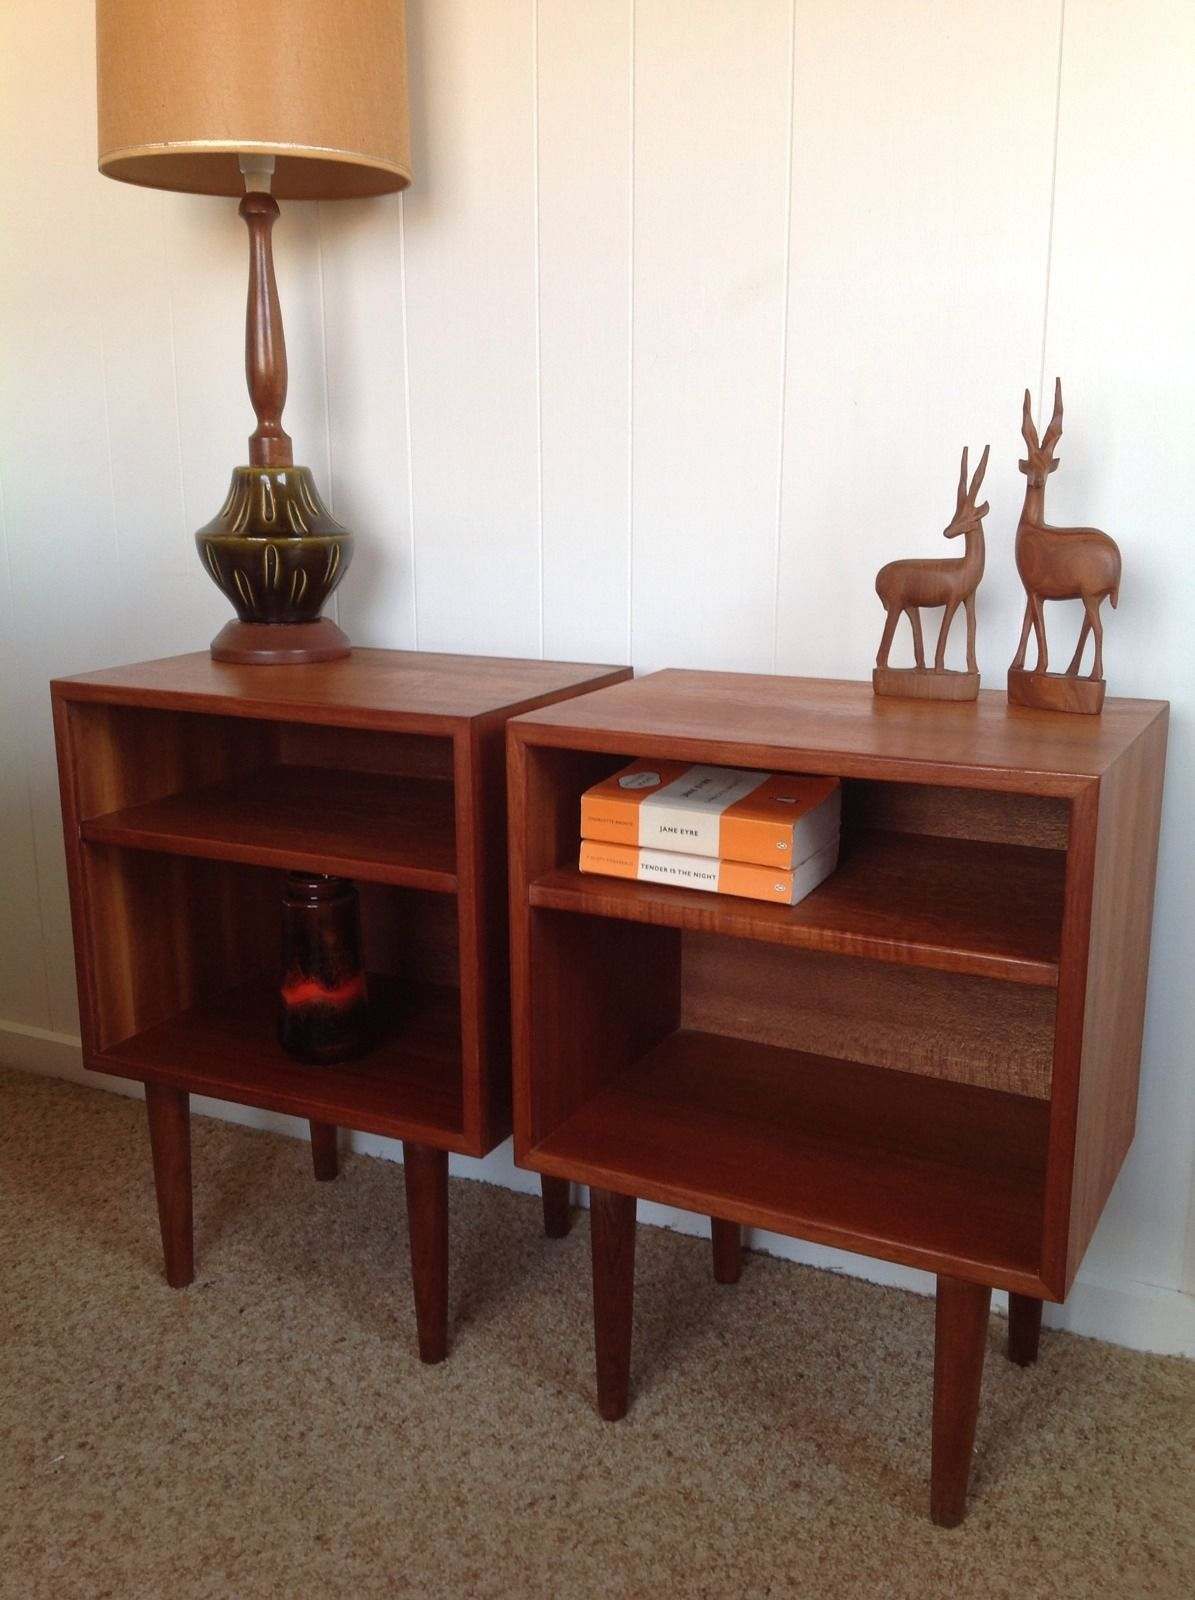 Retro Style Container Bedside Table: Hans Hayson Bedside Tables Danish Style Vintage Retro Fler